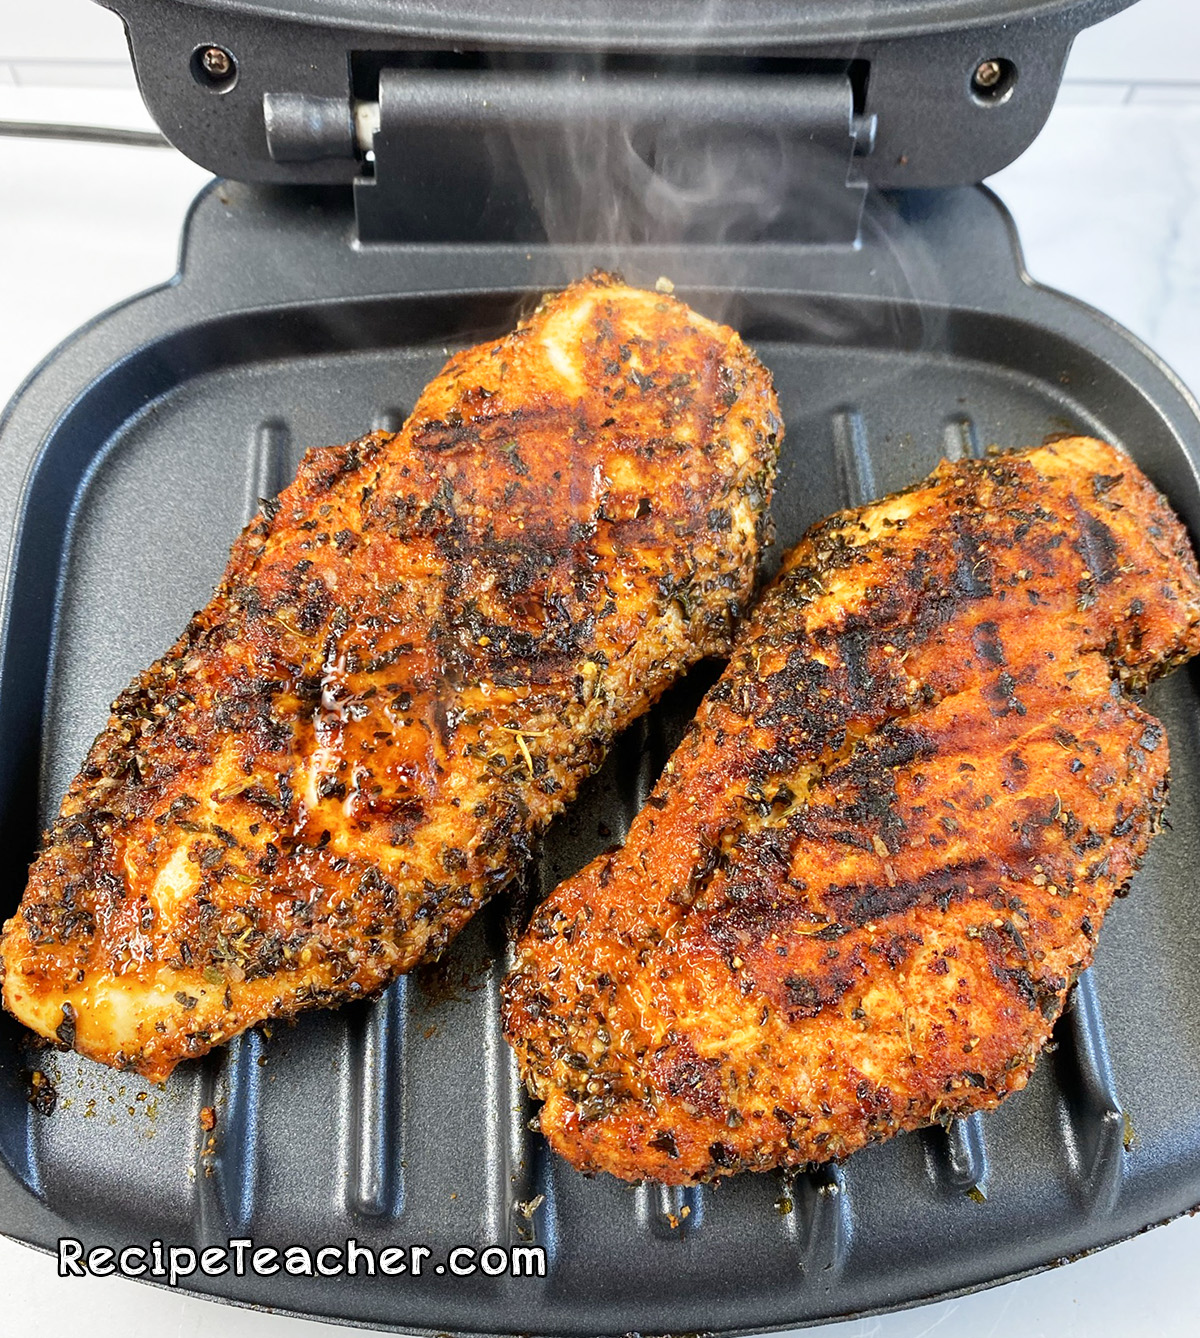 Recipe for George Foreman Grill boneless, skinless chicken breasts